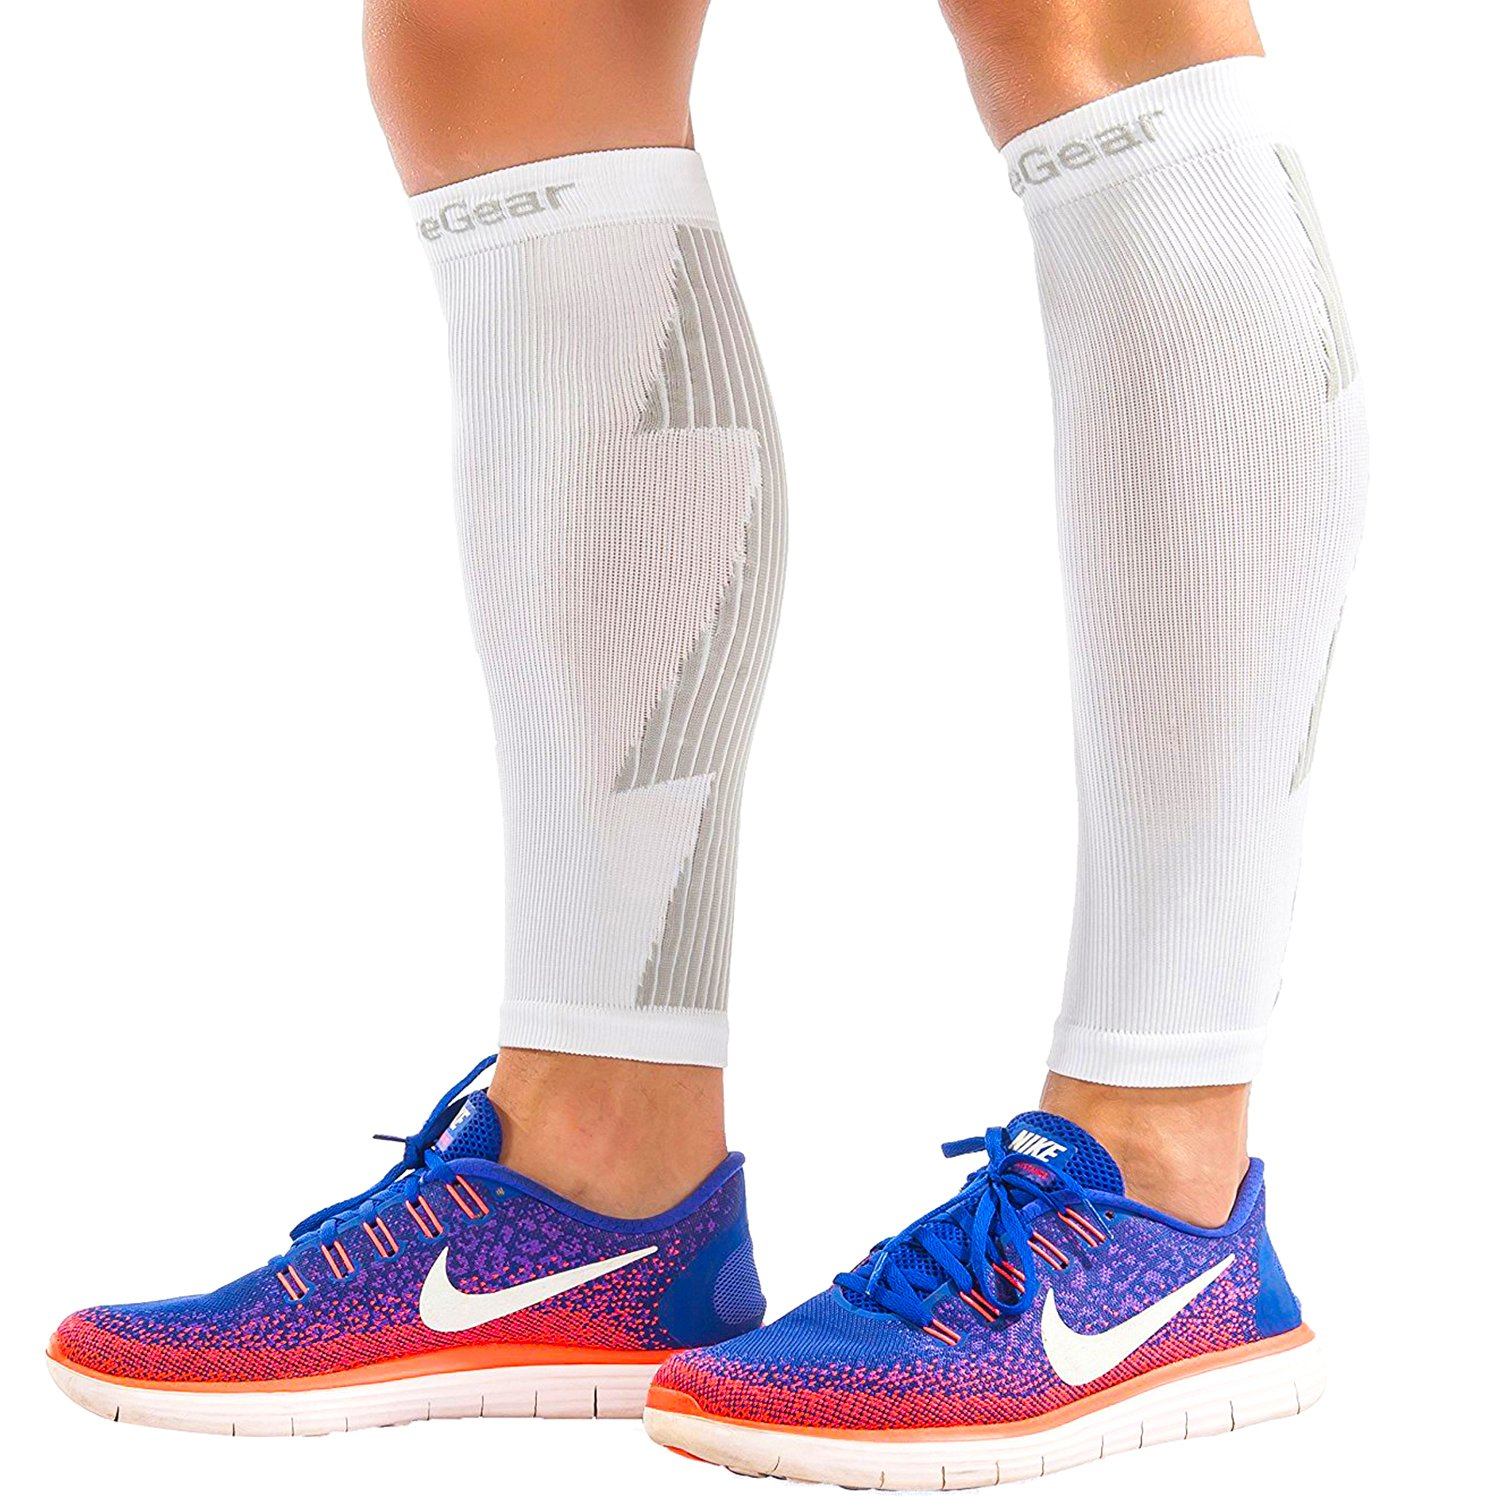 ActiveGear Calf Compression Sleeves for Men and Women to Improve Circulation and Recovery - White/Gray S/M (One Pair) by ActiveGear